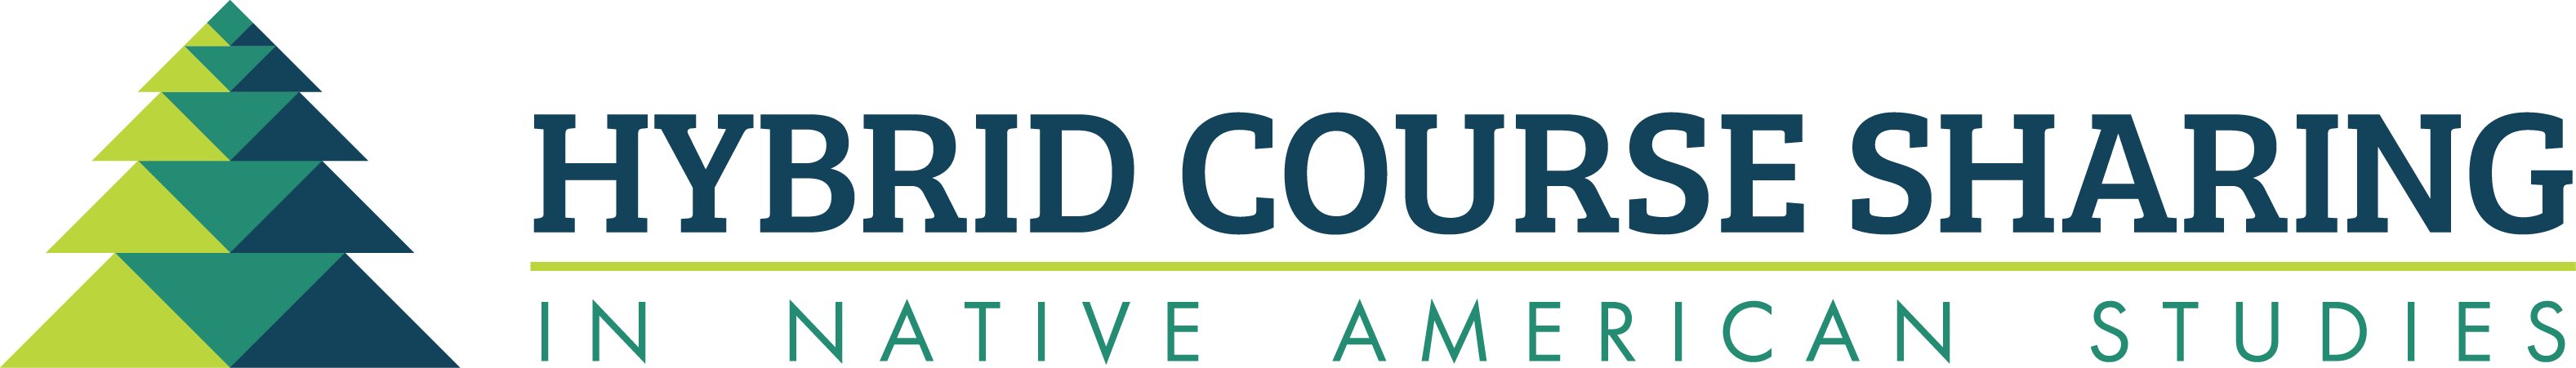 Hybrid Course Sharing logo